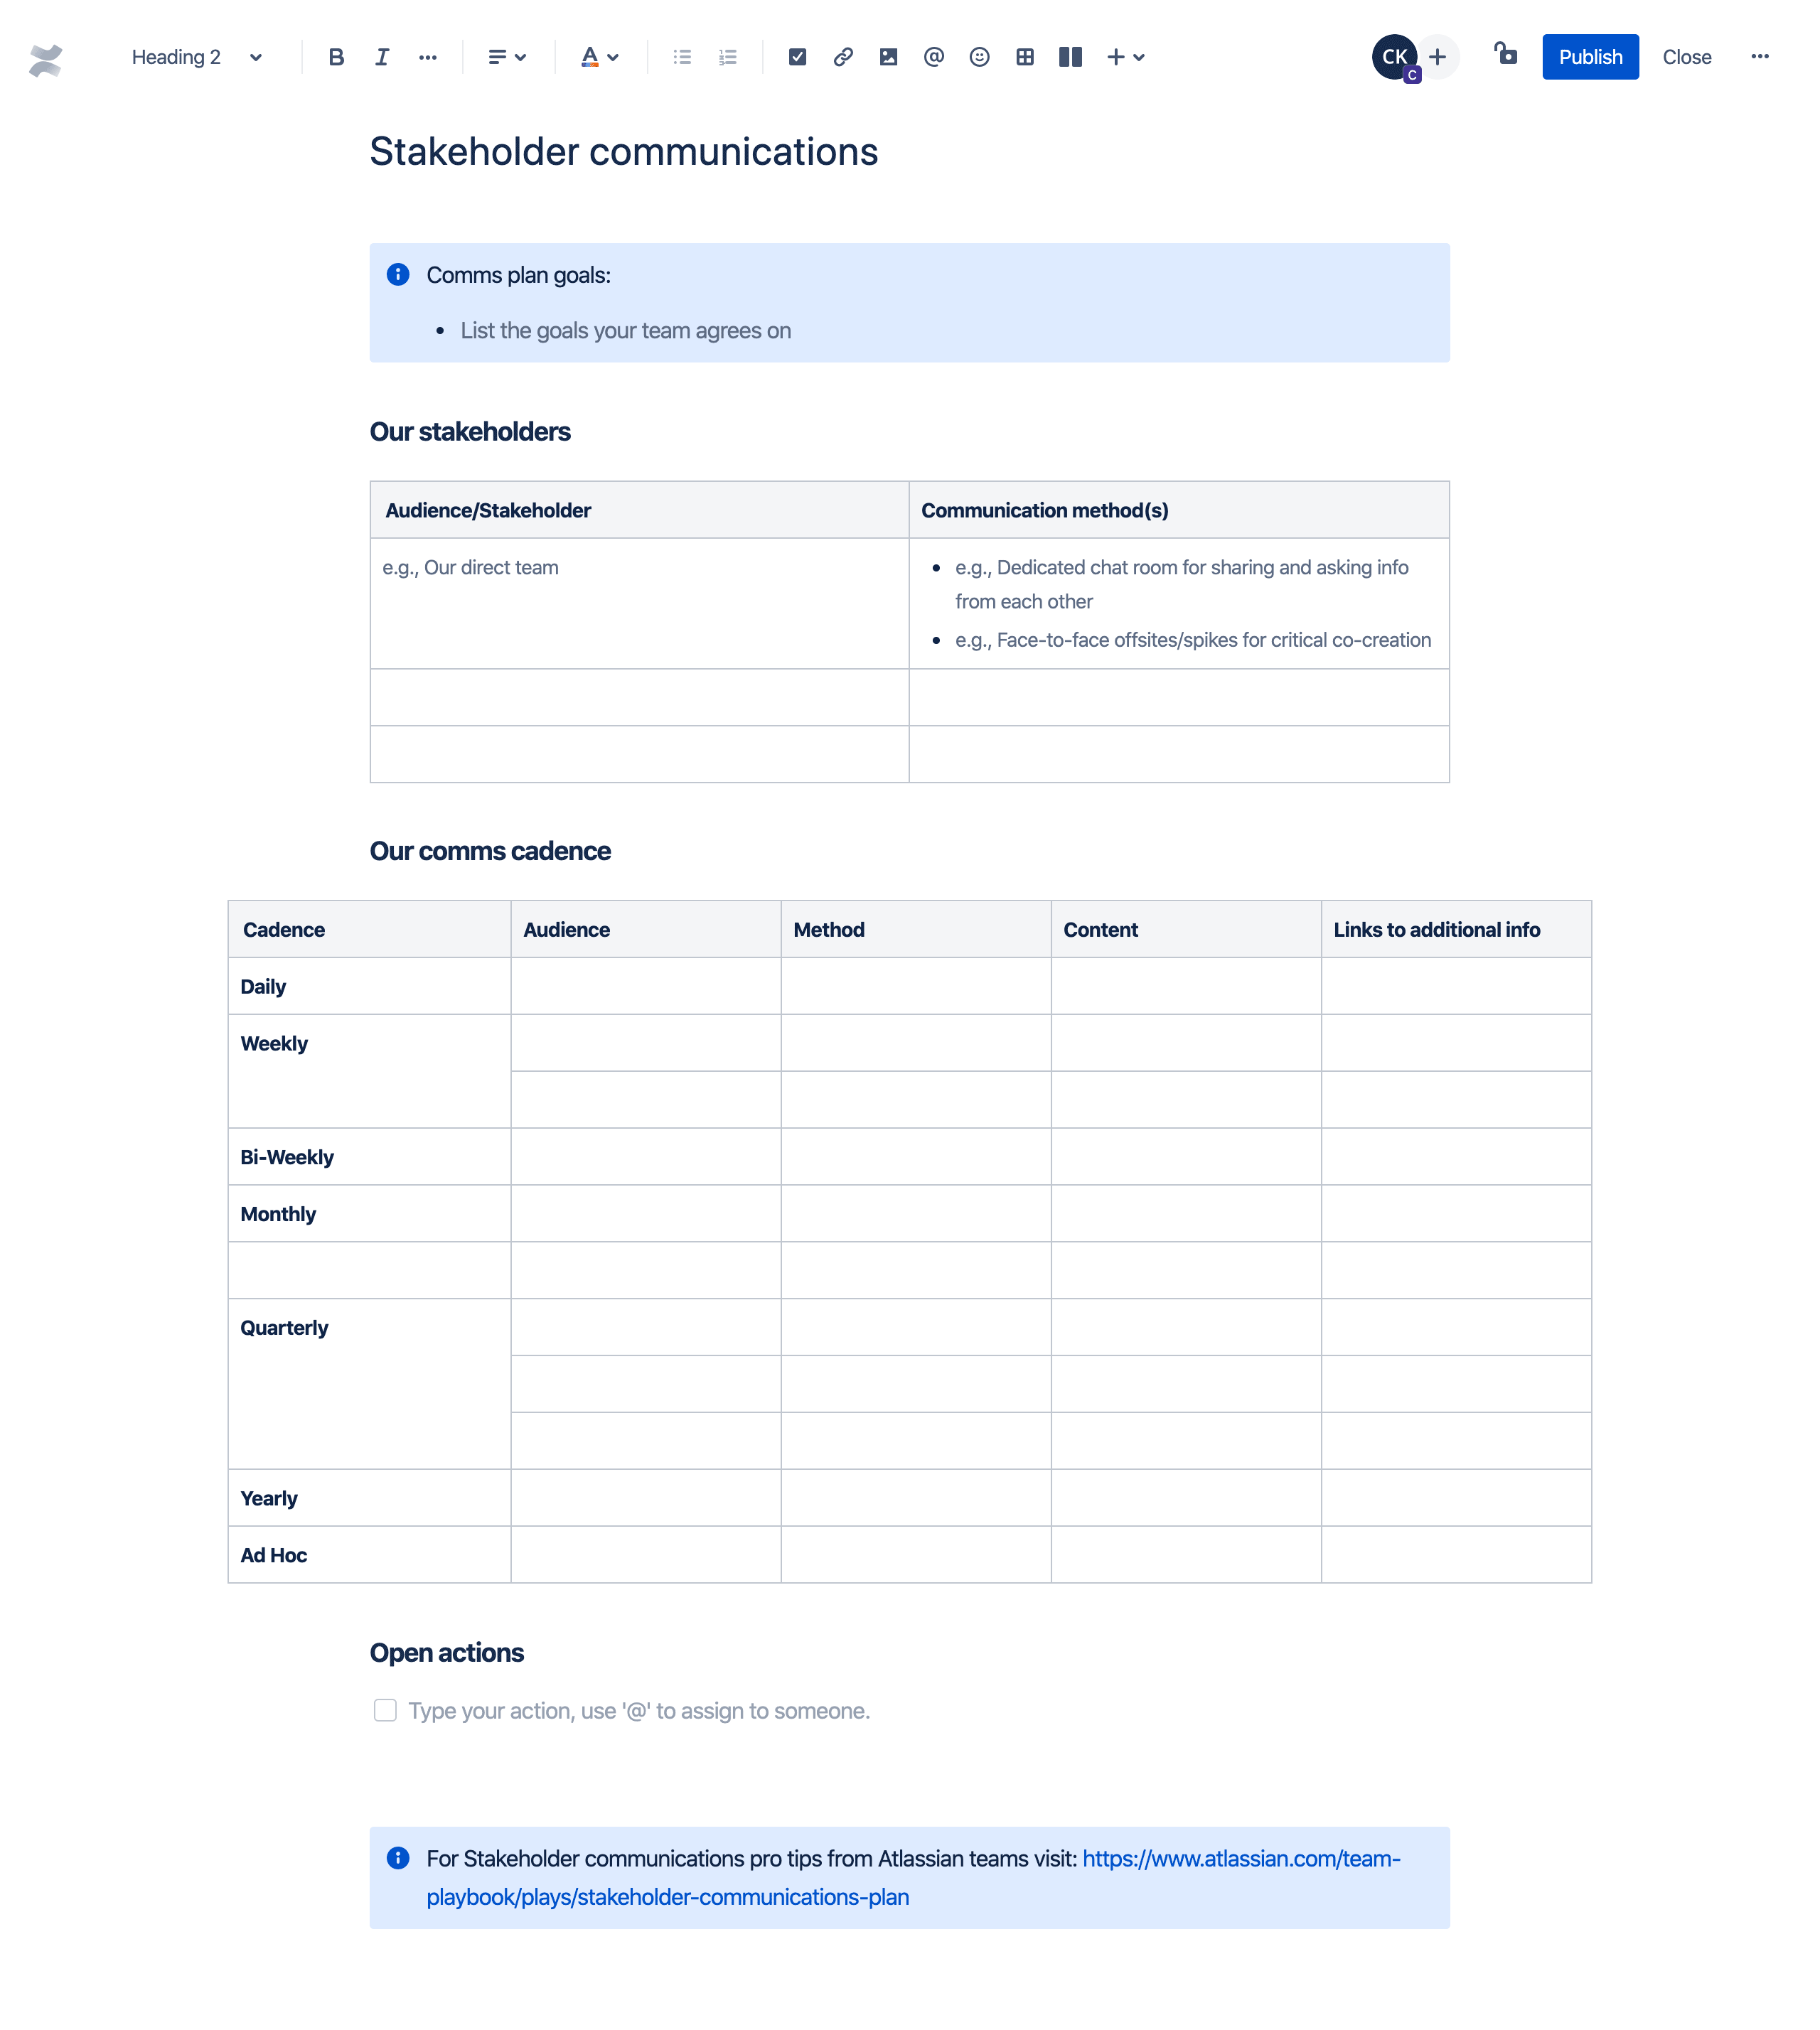 Stakeholder communications template